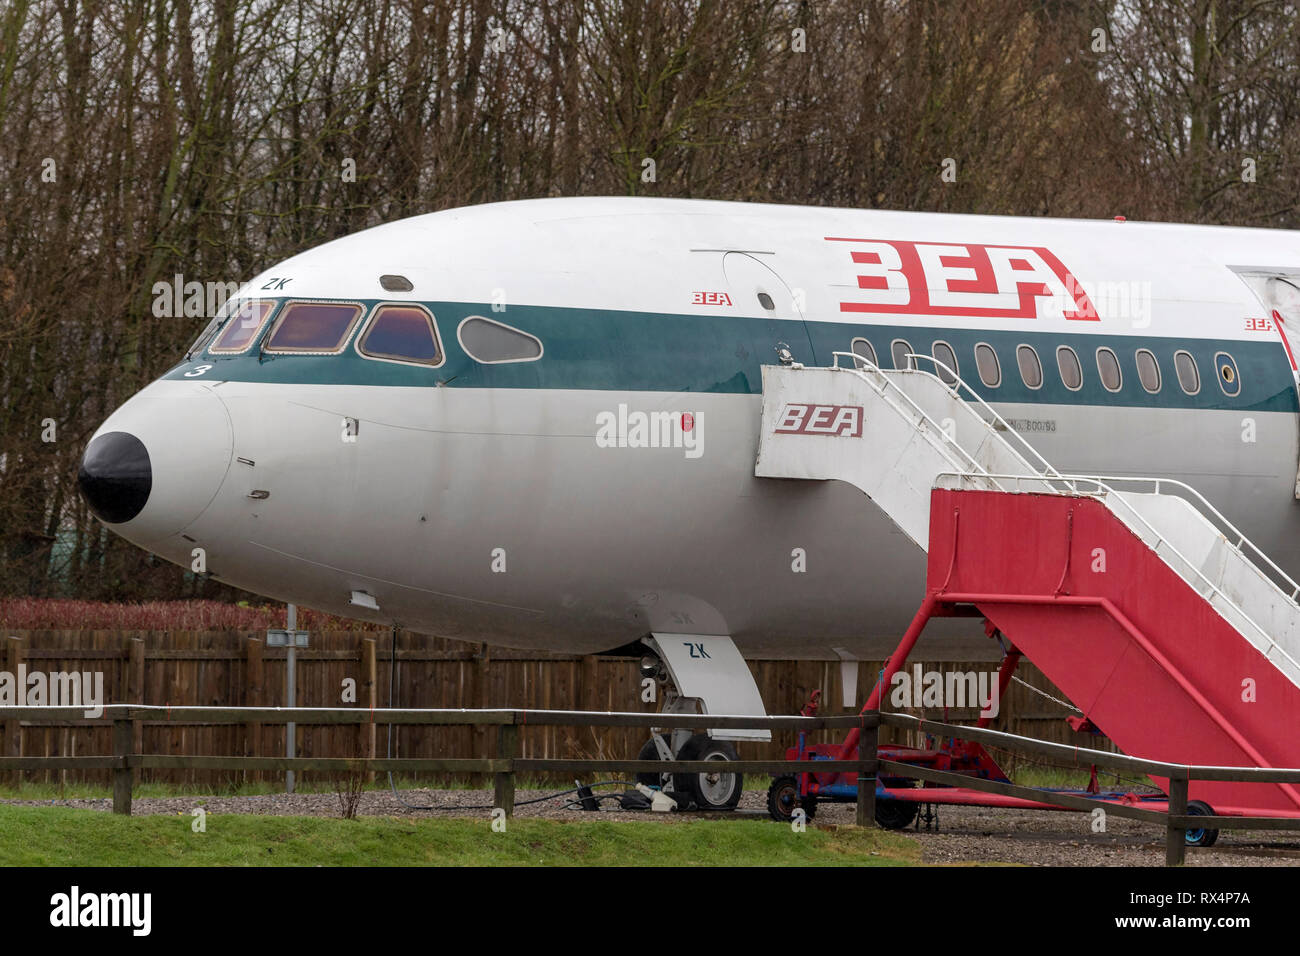 BEA Trident airliner on static display at Manchester airport visitor centre. - Stock Image